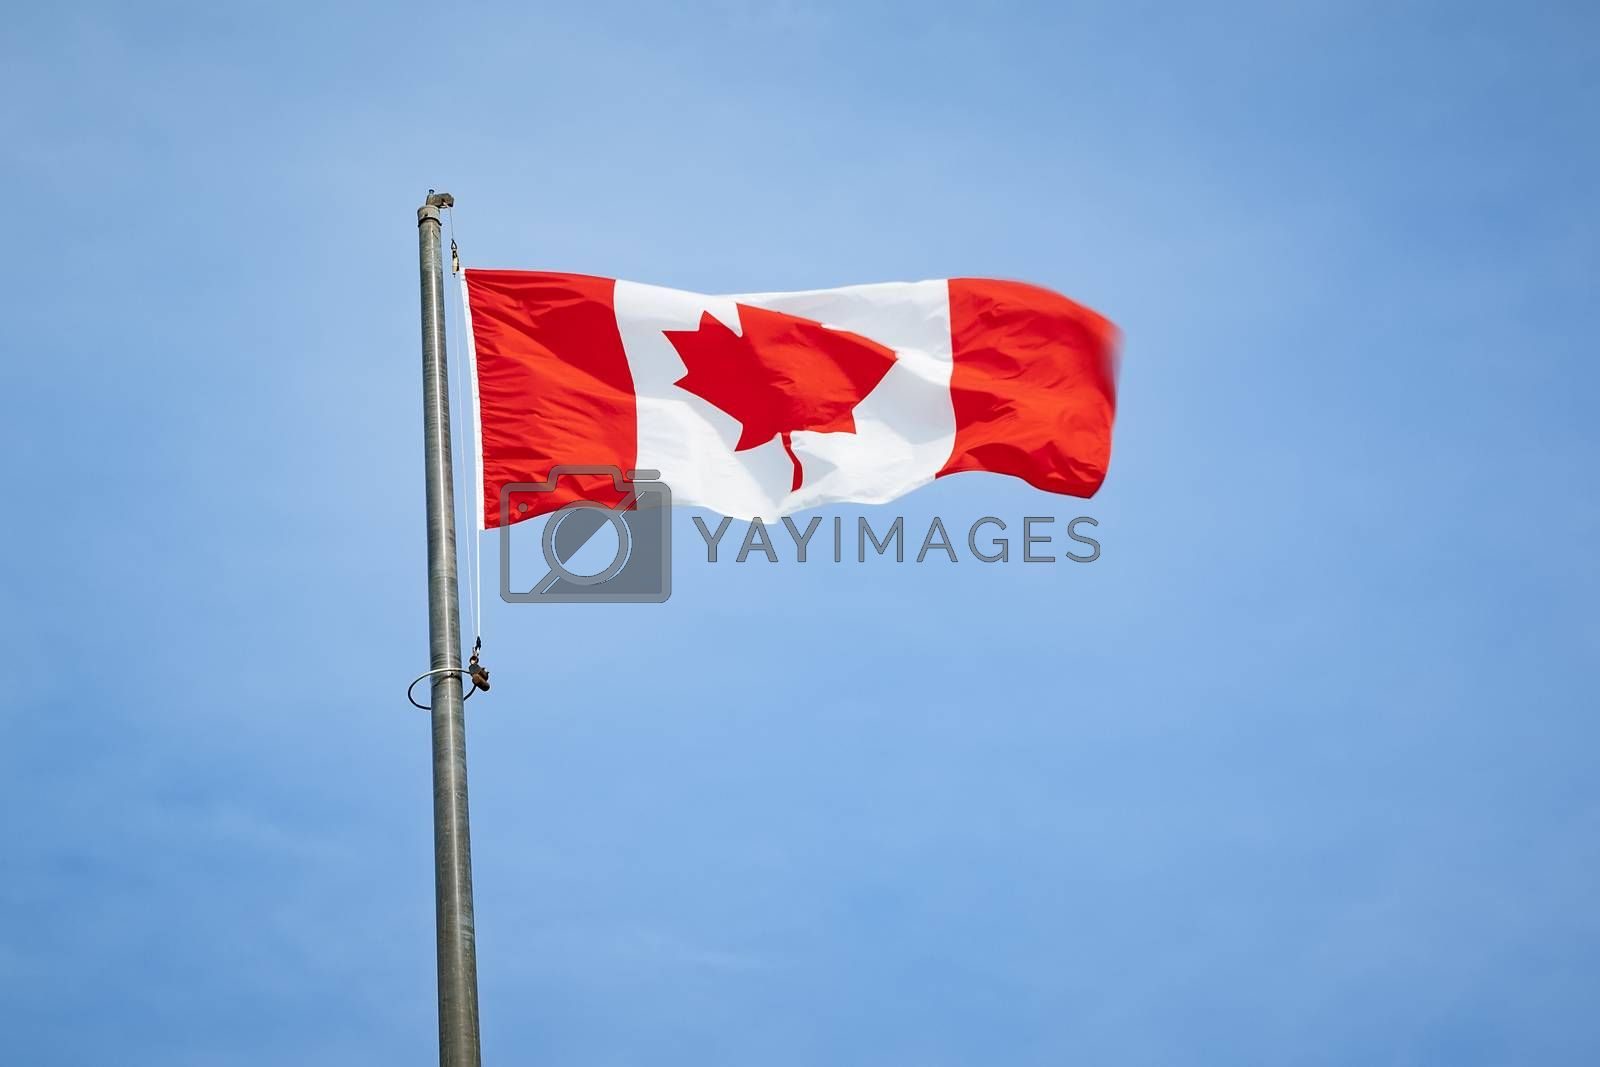 An image of the flag of Canada